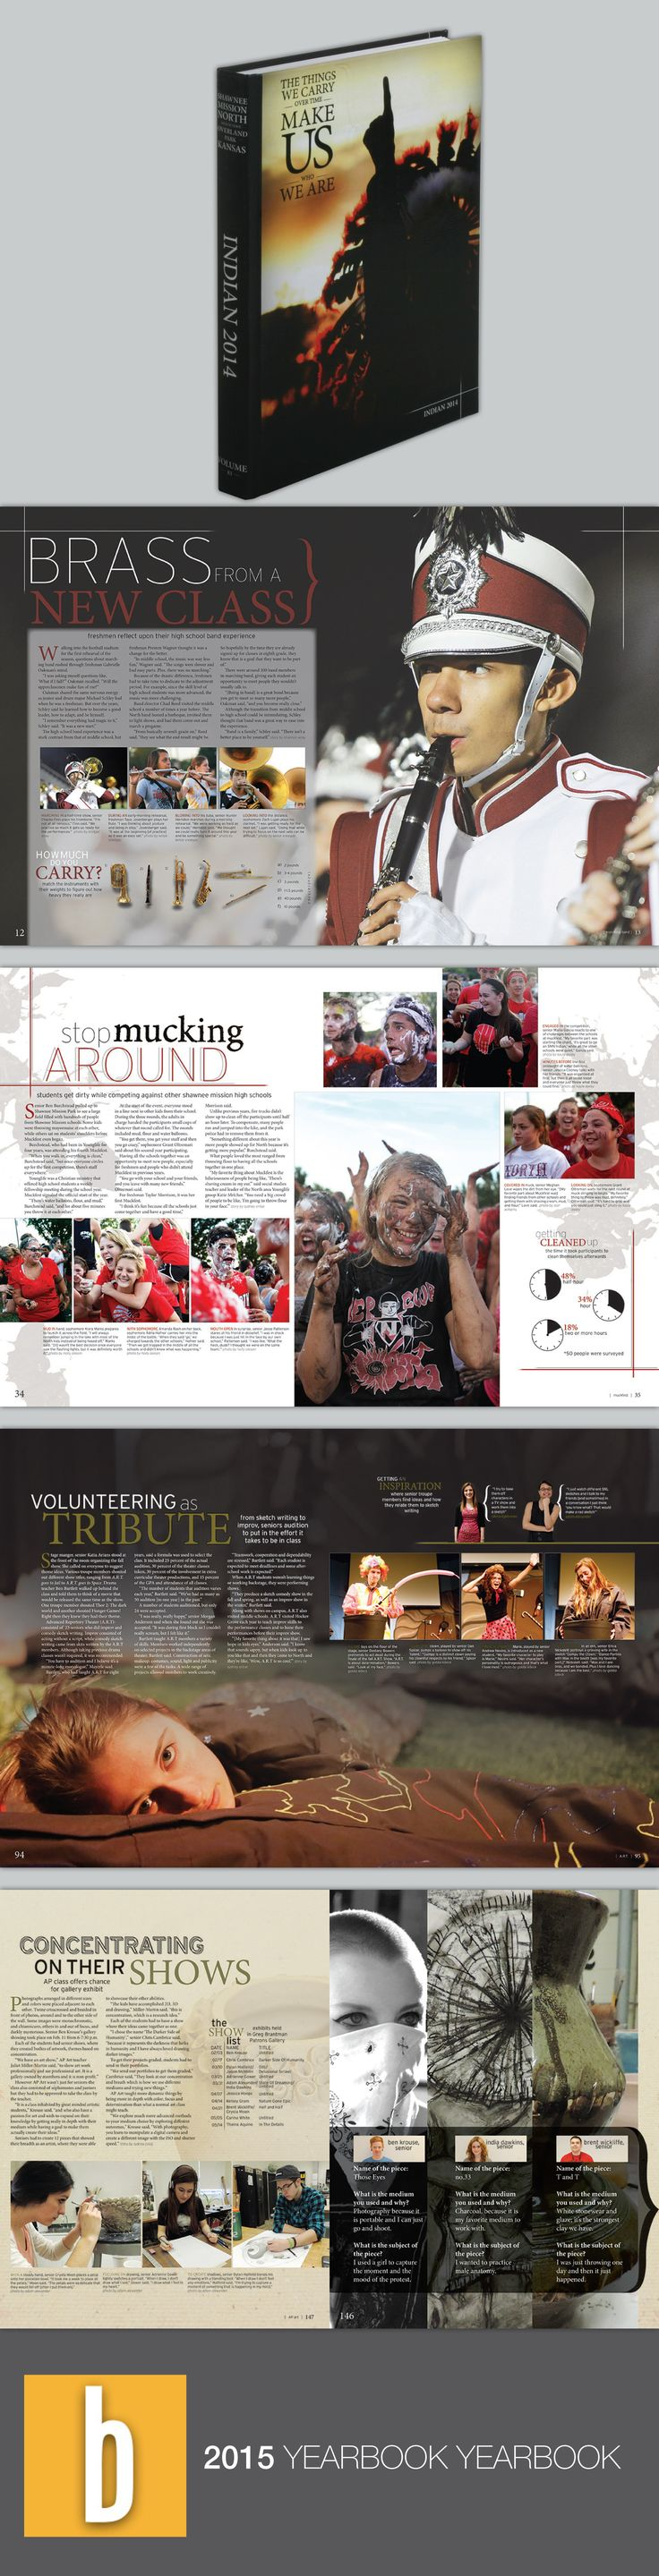 The things we carry are the things that make us who we are. Yearbook theme idea and page layout